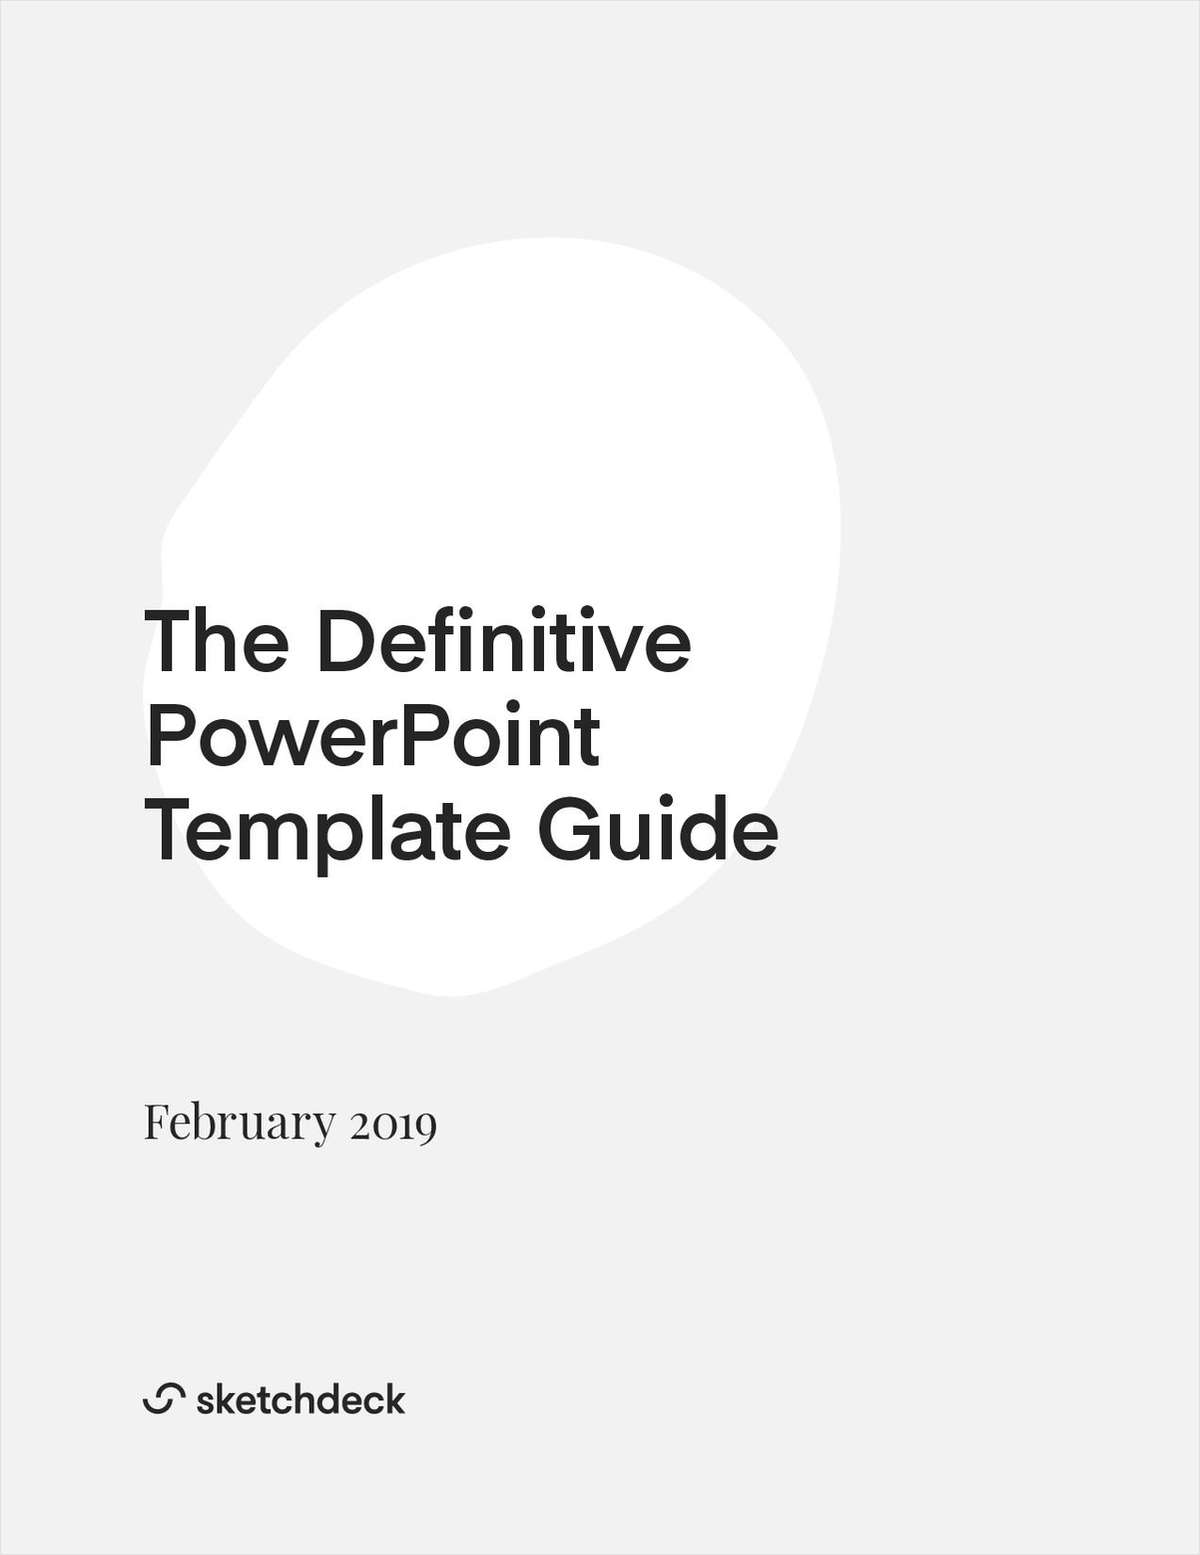 The Definitive PowerPoint Template Guide